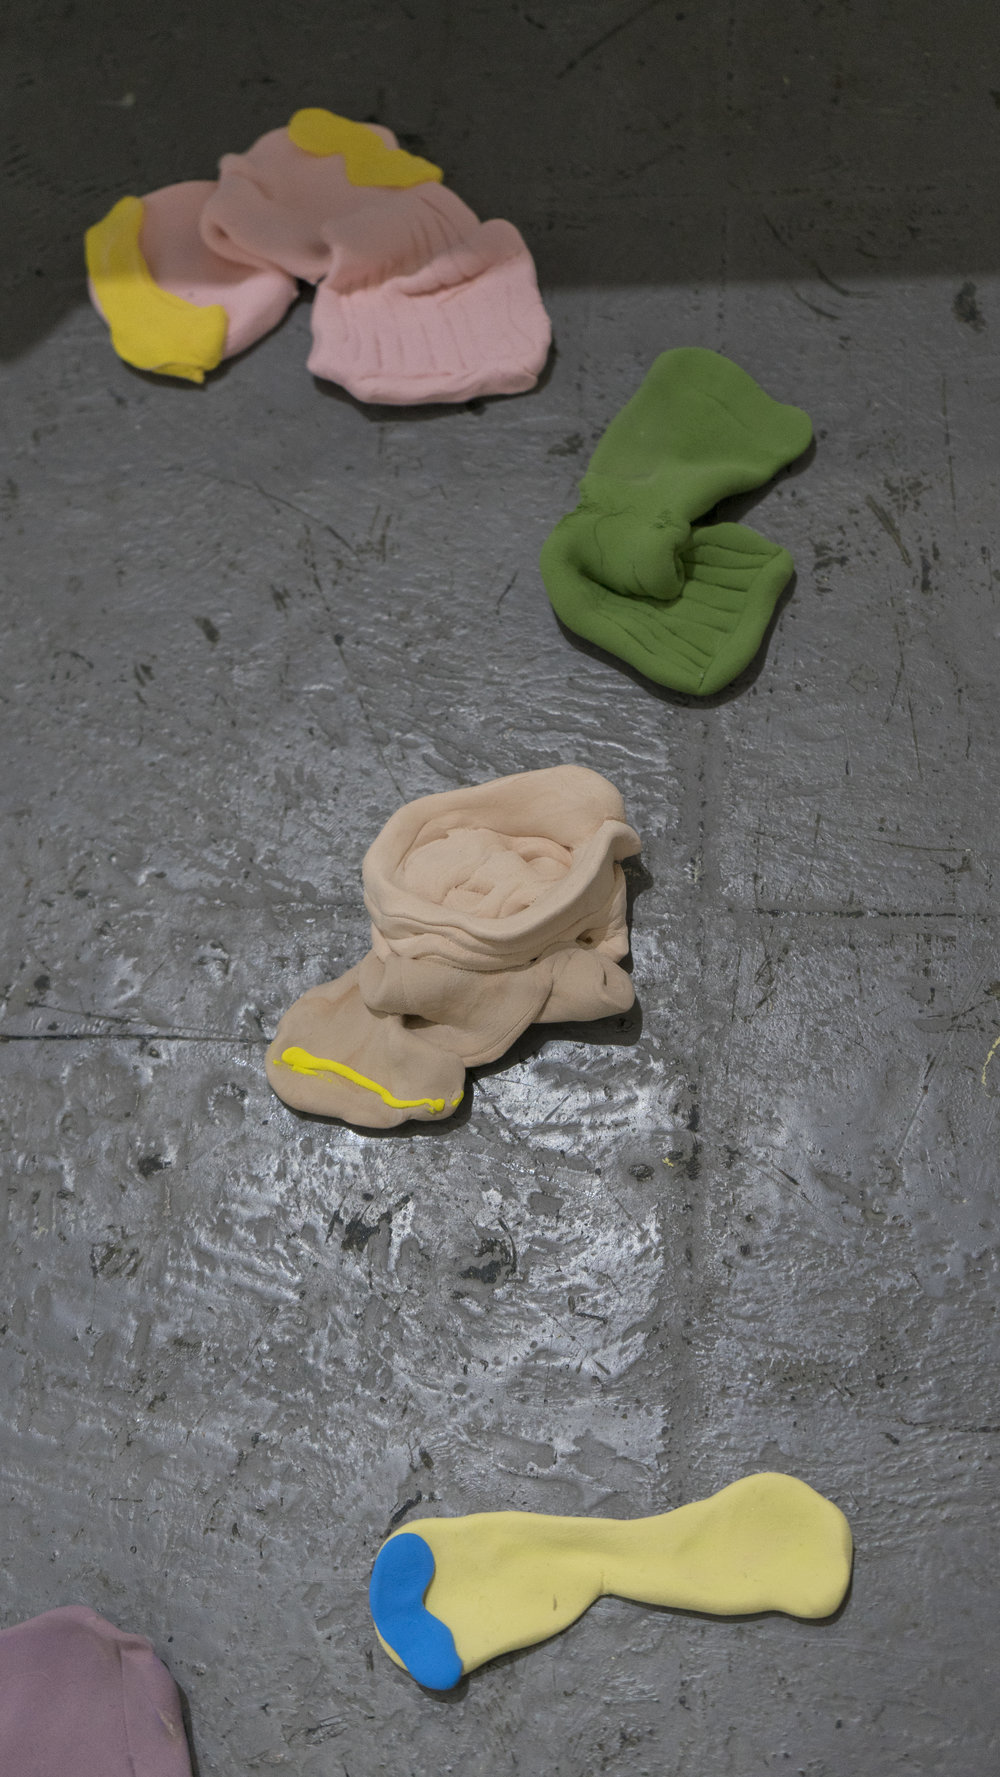 Kitchen table - floor - bed - socks   Bridget Bailey  Air dry clay  2017